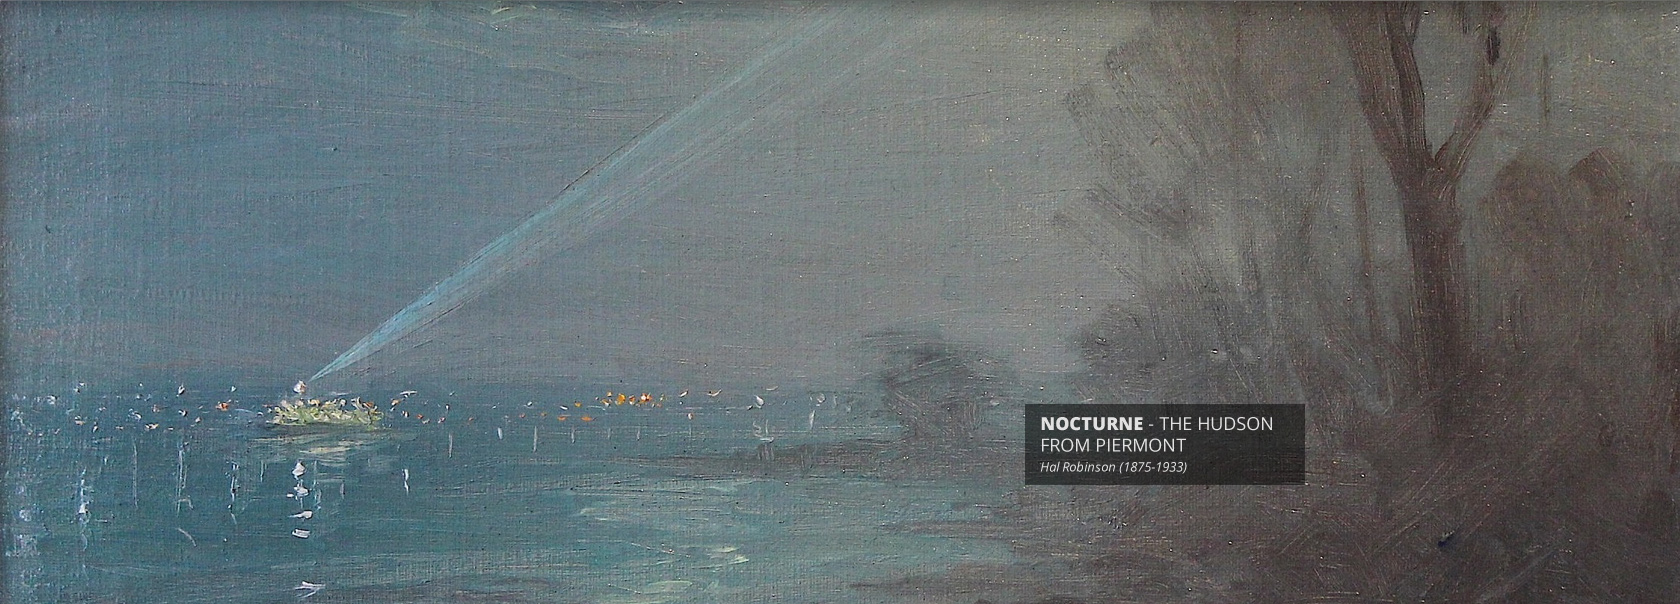 Nocturne The Hudson From Piermont by Hal Robinson